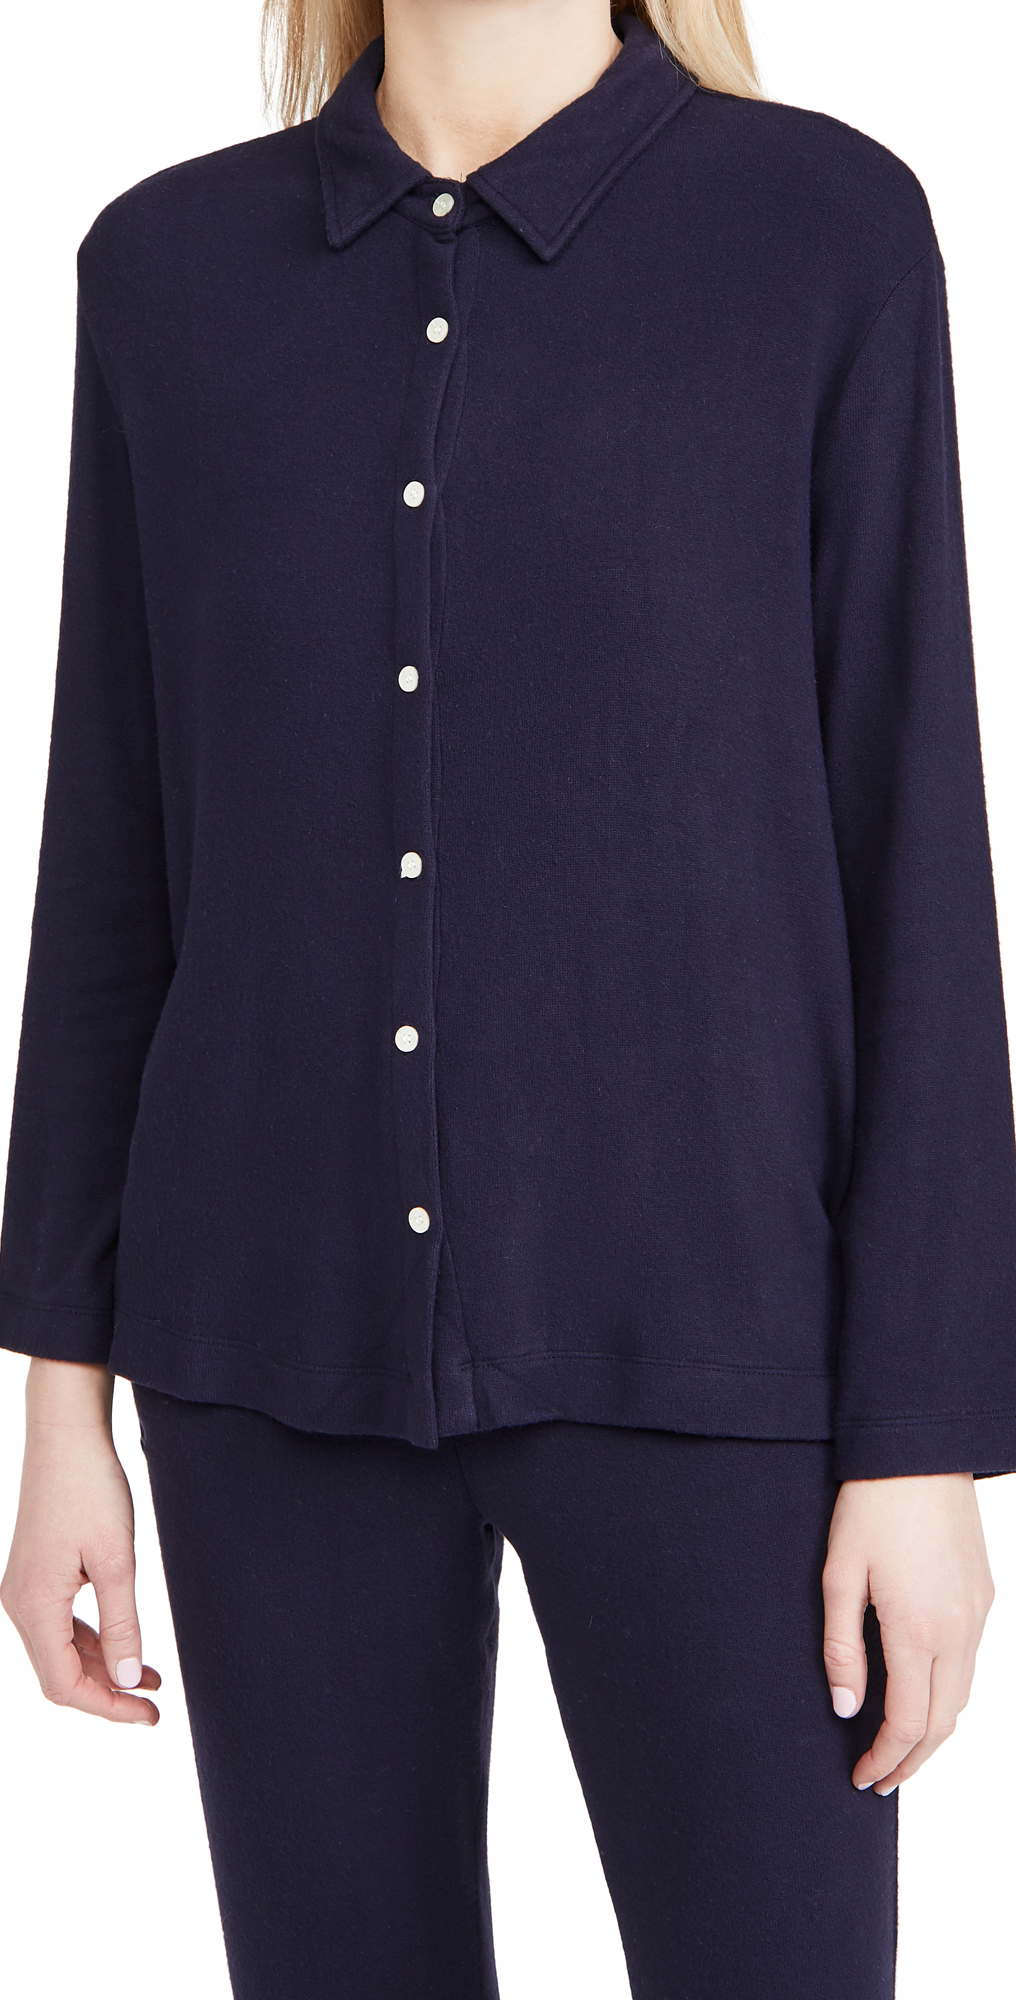 Leset Lori Knit Button Down Shirt